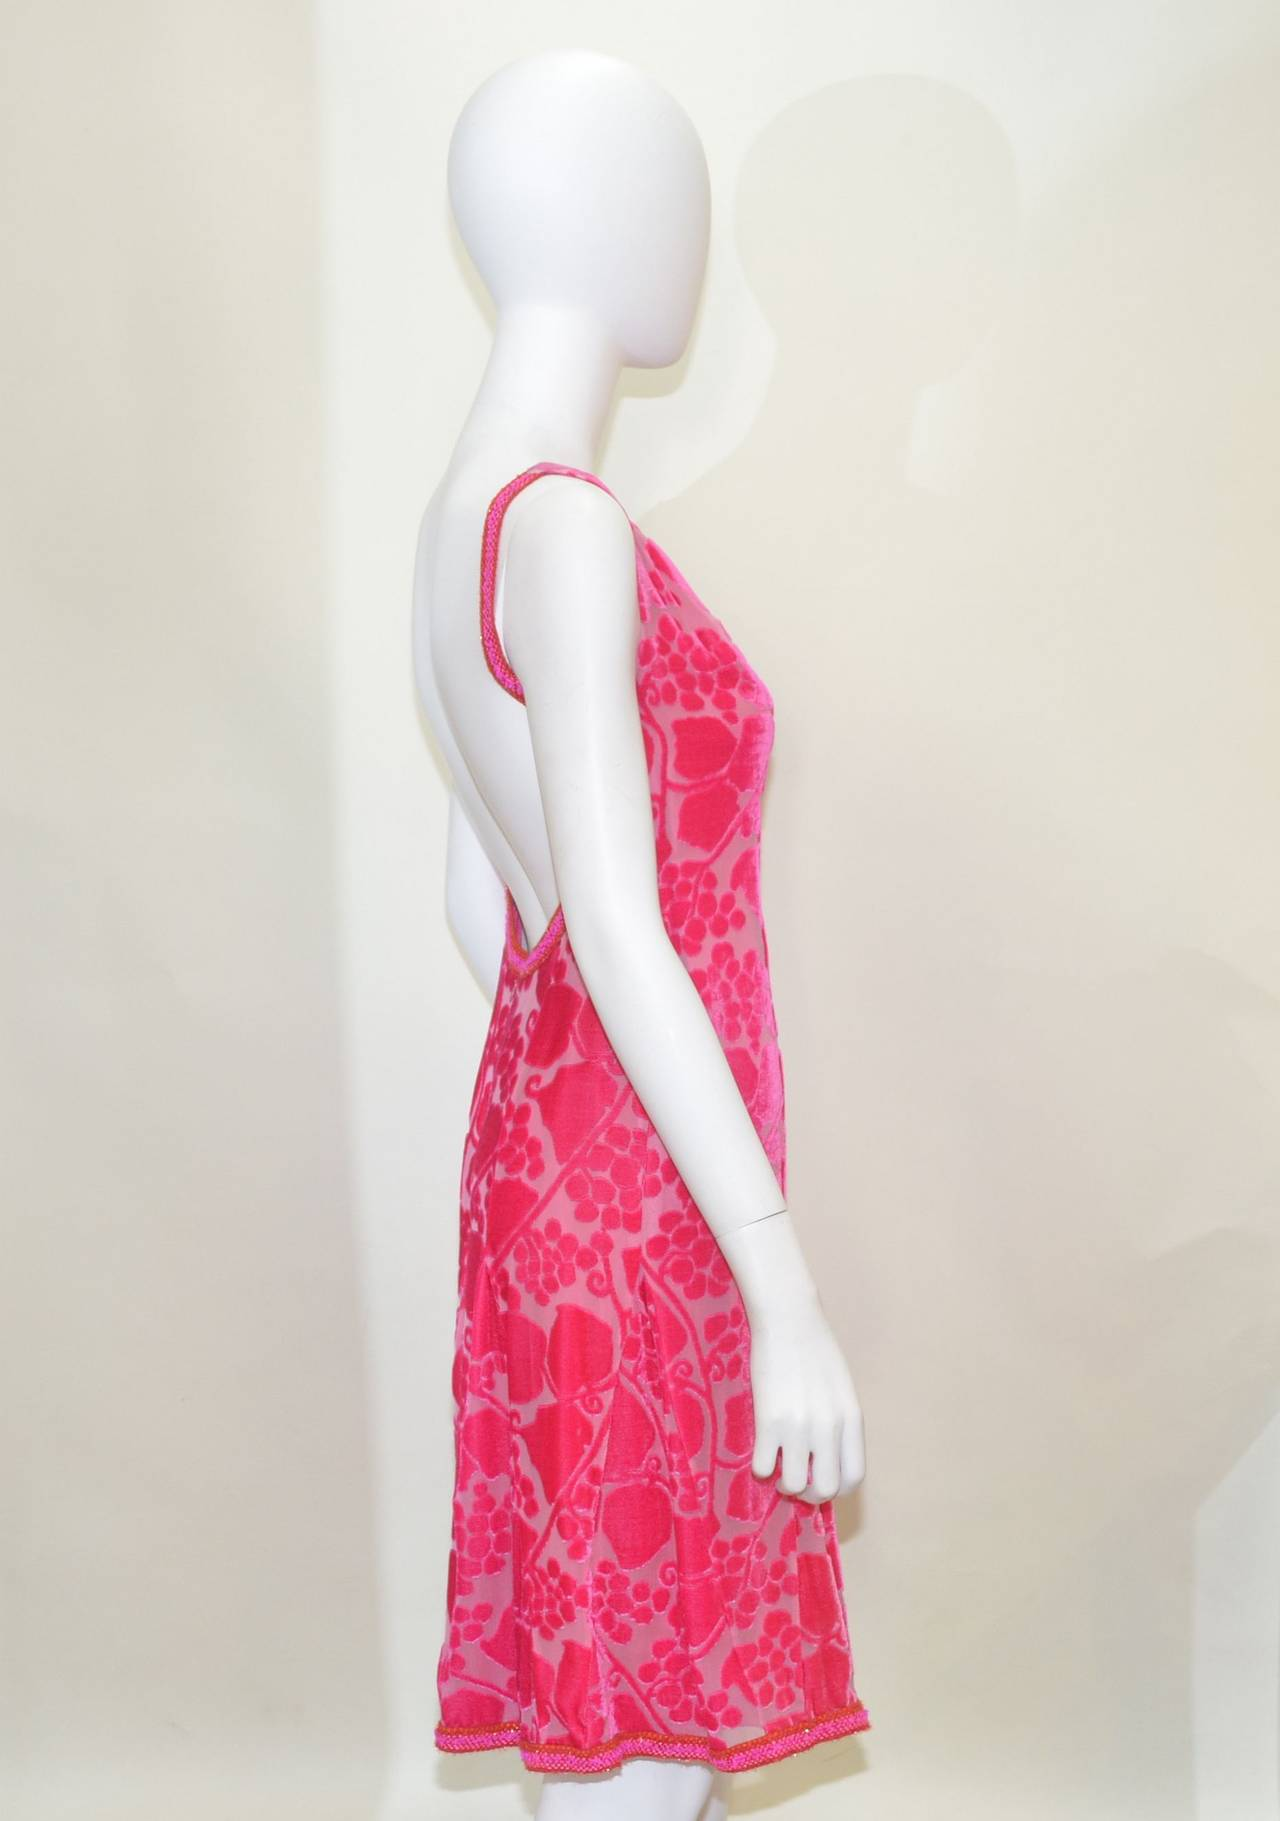 Chanel dress features a bias cut floral velvet pattern throughout with braid trim. Plunging open back; fit and flare skirt, back zipper,hook-and-eye fastening and 100% silk lining. Made in France. 33% nylon, 33% acrylic, 16% wool, 13% cotton, and 5%